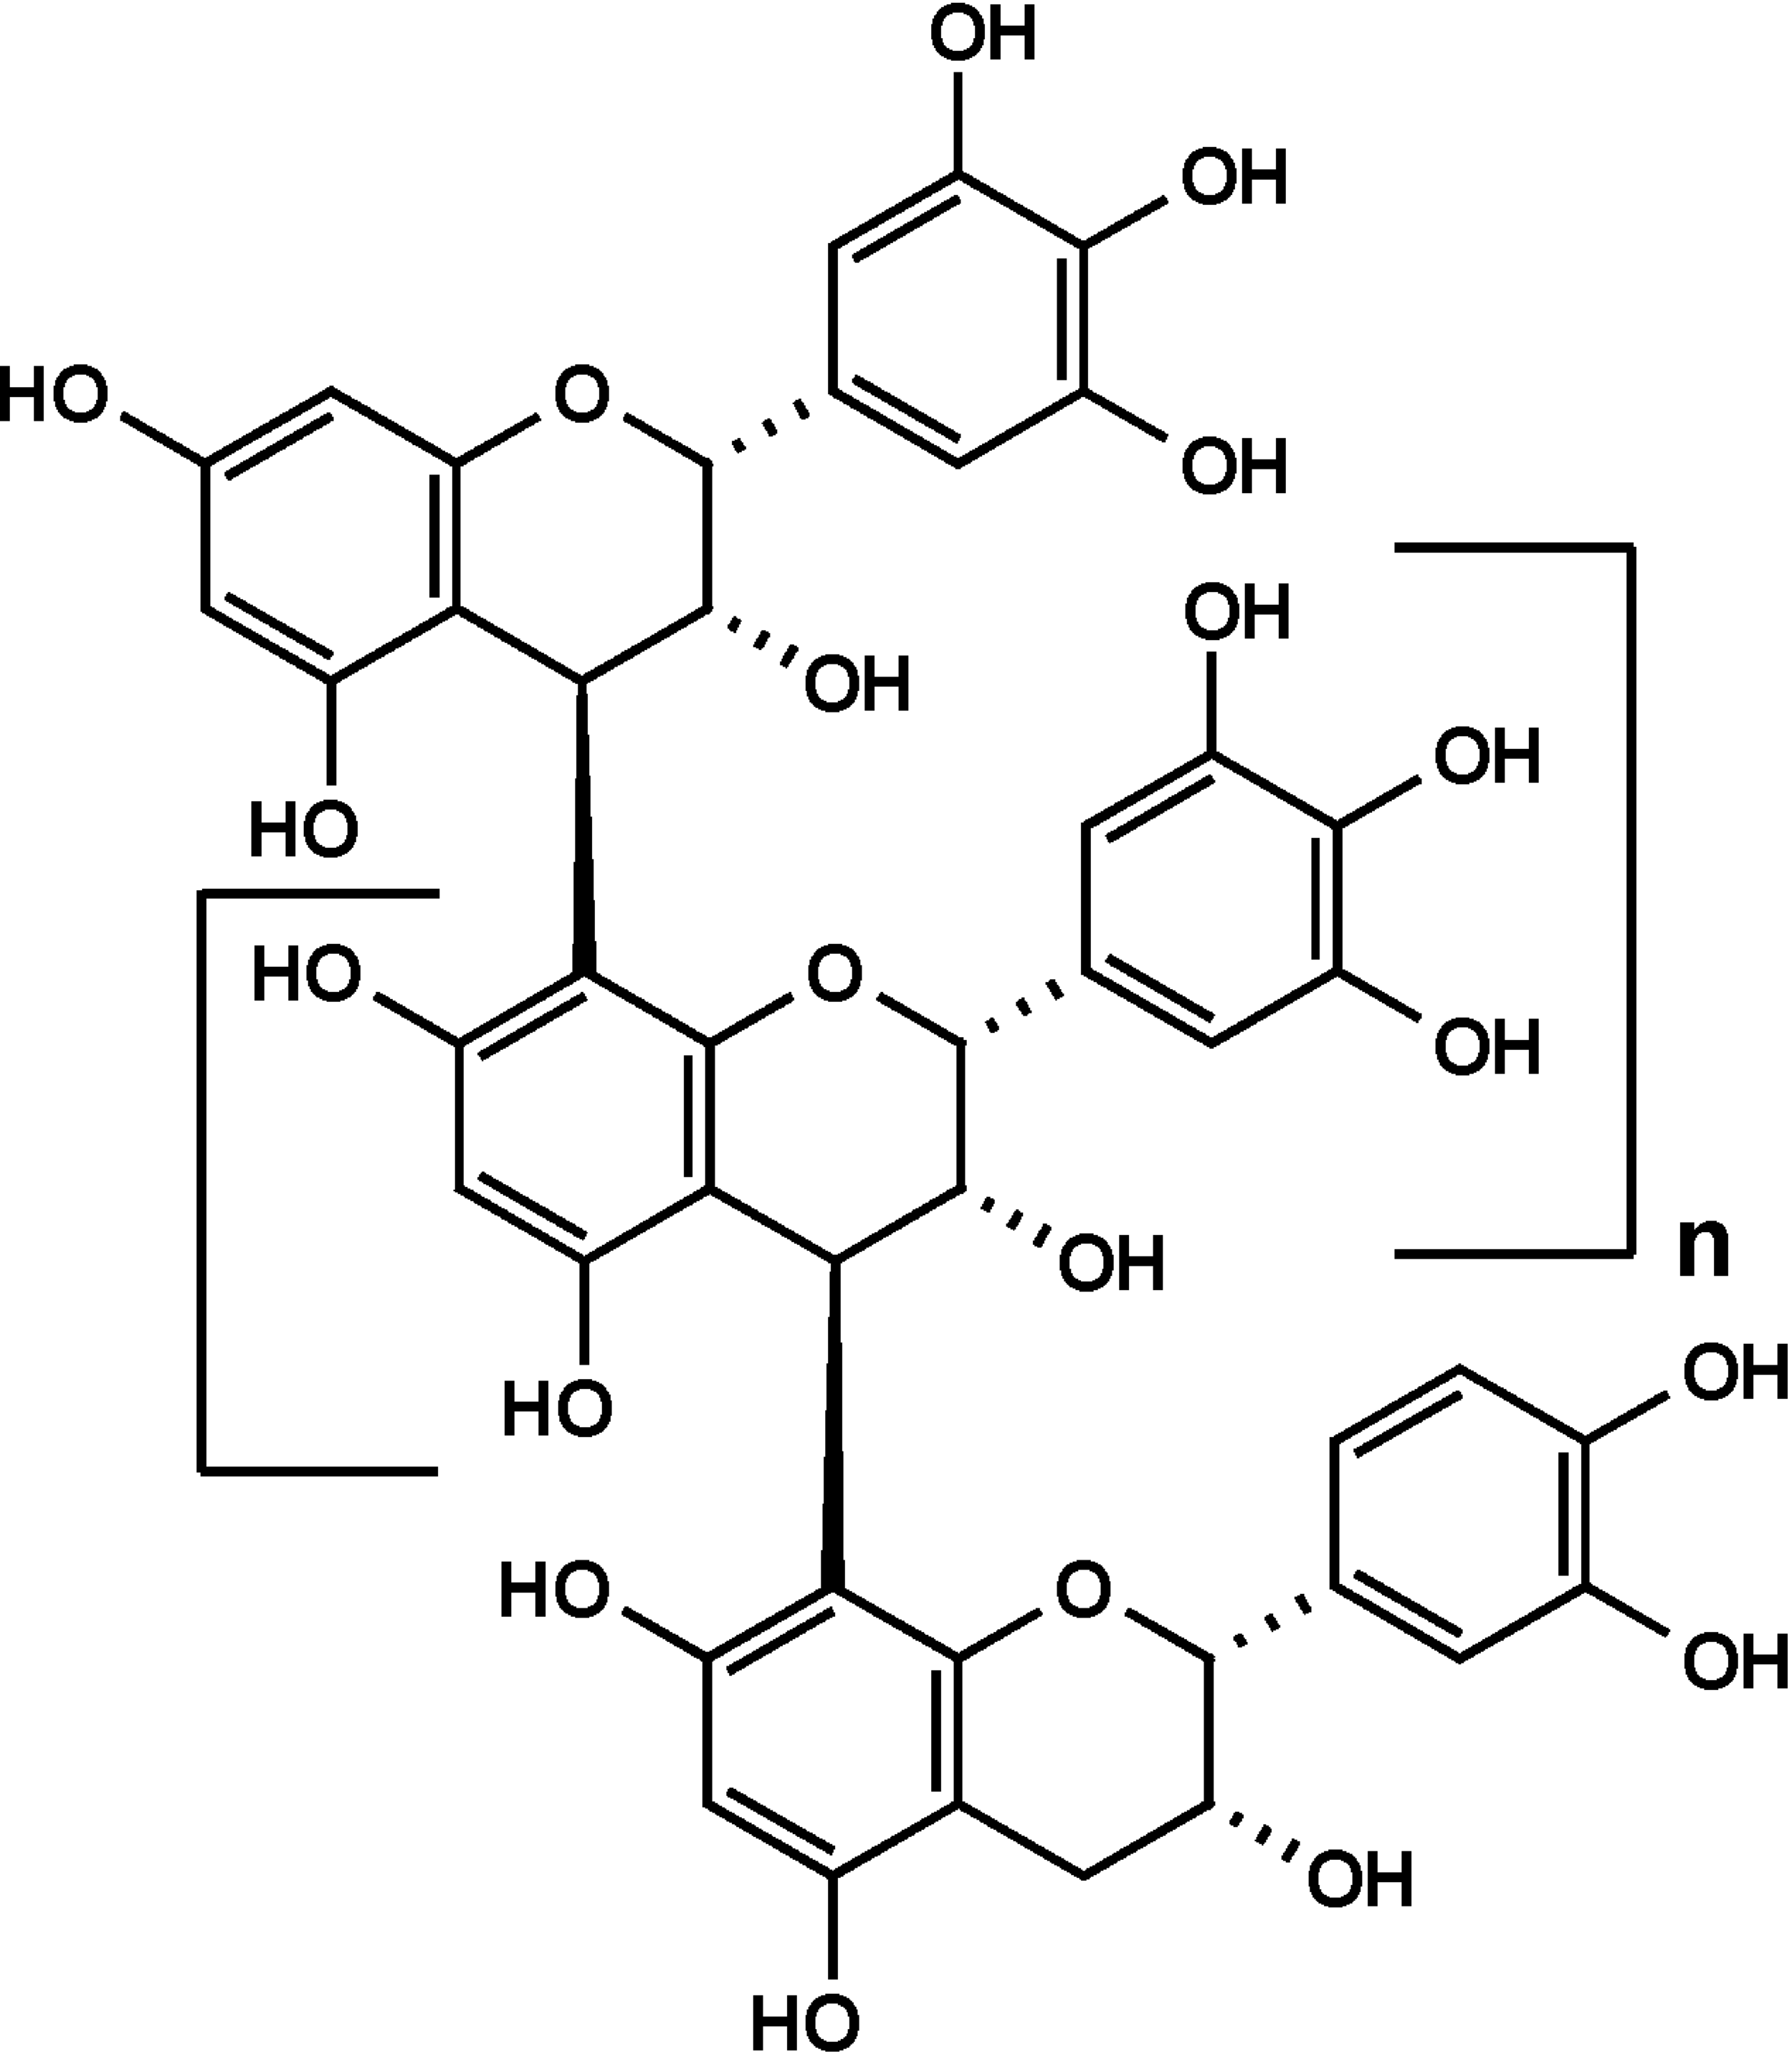 Chemical Structure of Prodelphinidin